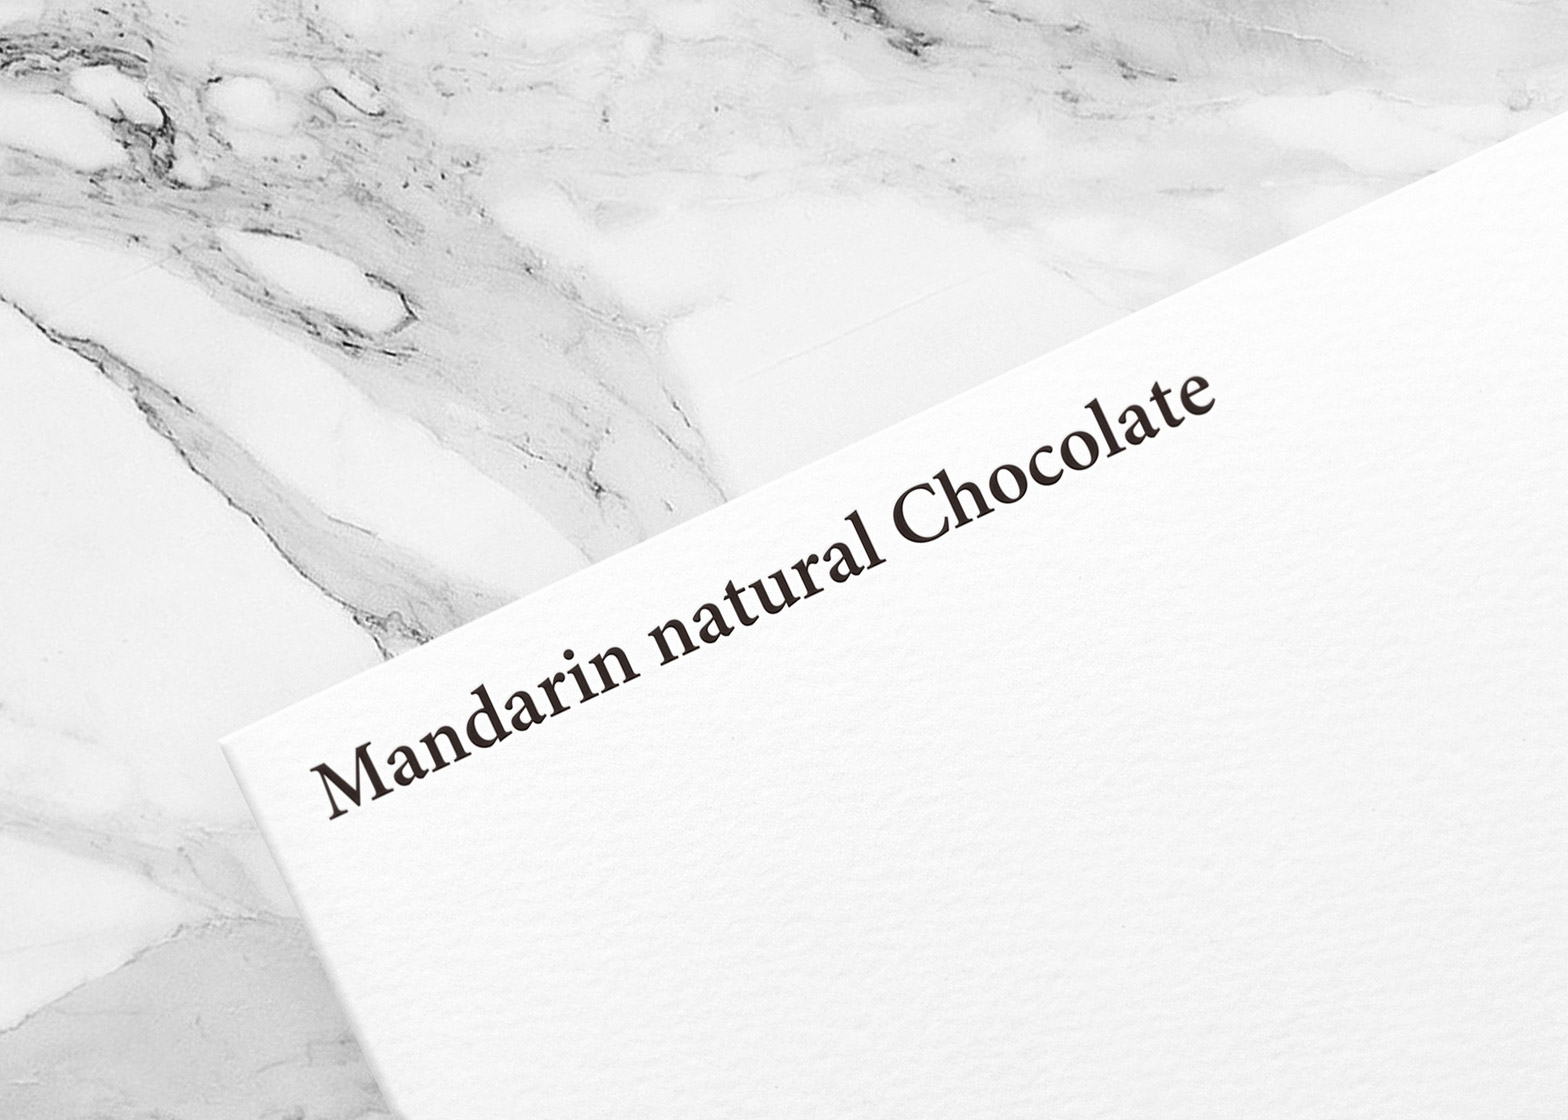 Mandarin natural chocolate by Yuta Takahashi